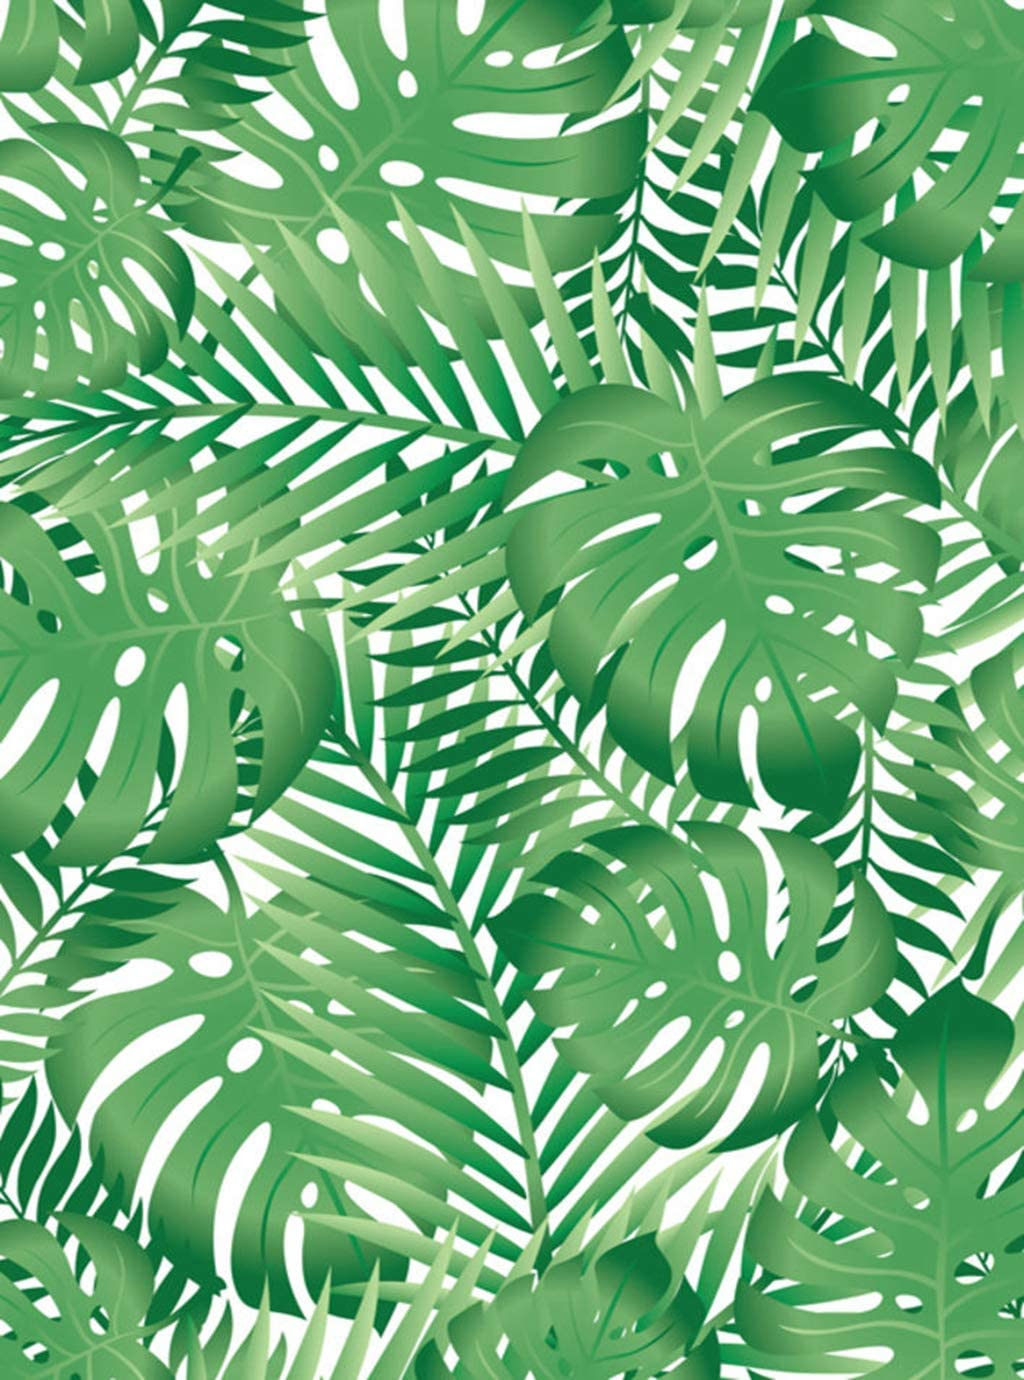 Llsty Poster Wall Art Green Leaf Tropical Leaves Palm Fern Foliage Beach 24x36 Inch Mural Print Artwork Home Decoration Advanced Perfect Suitable for Bedroom Office D¨¦cor